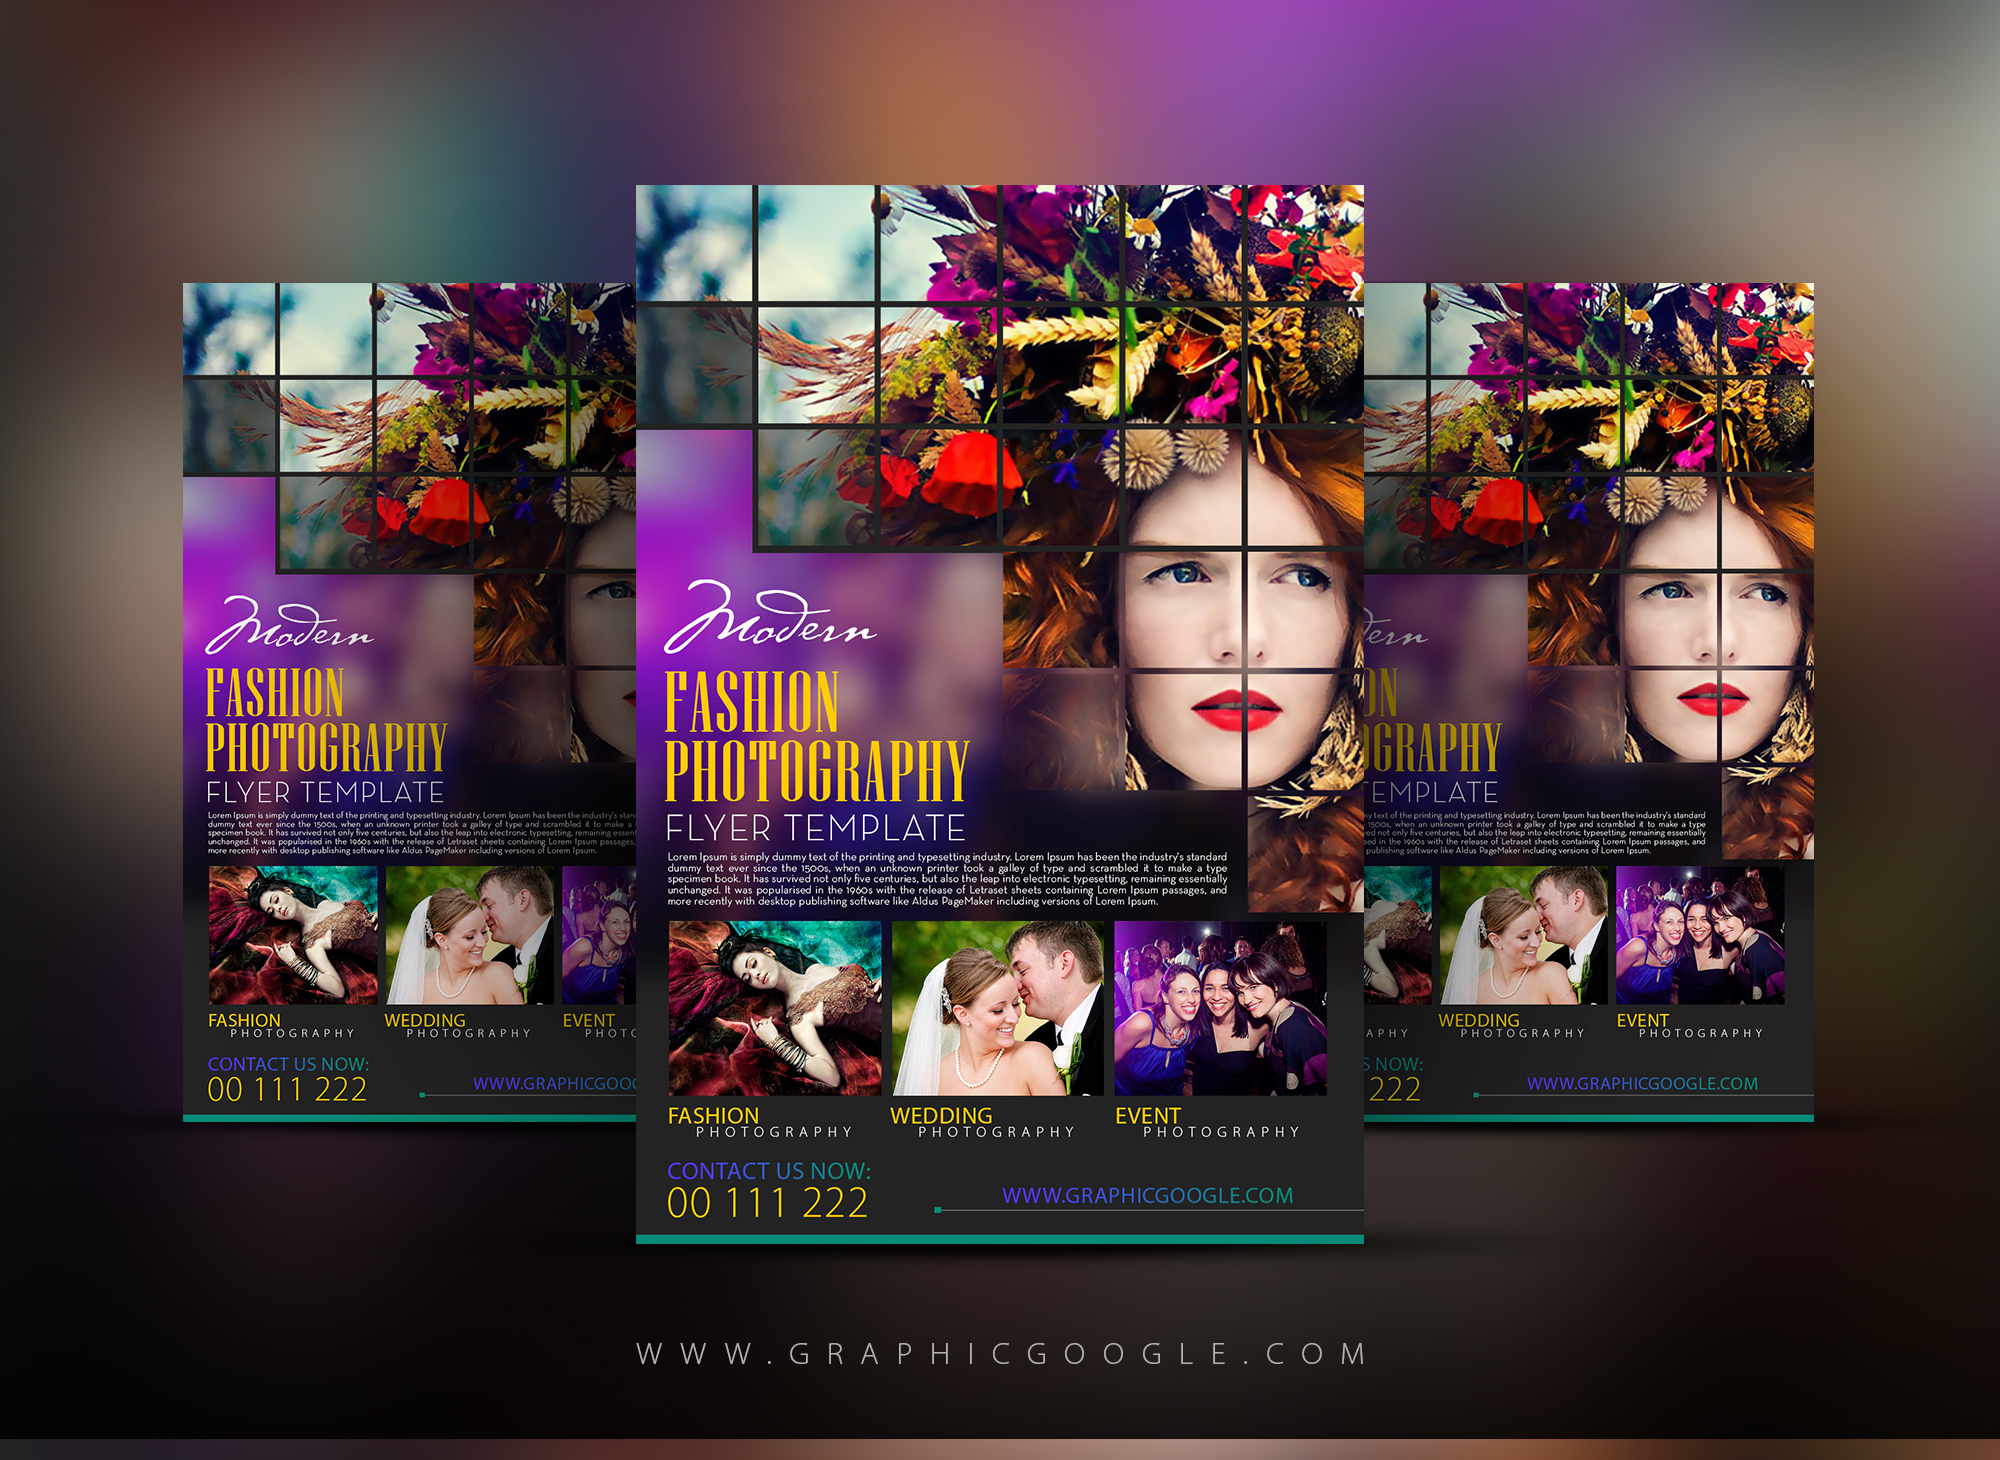 Free Modern Fashion Photography Flyer Template-300